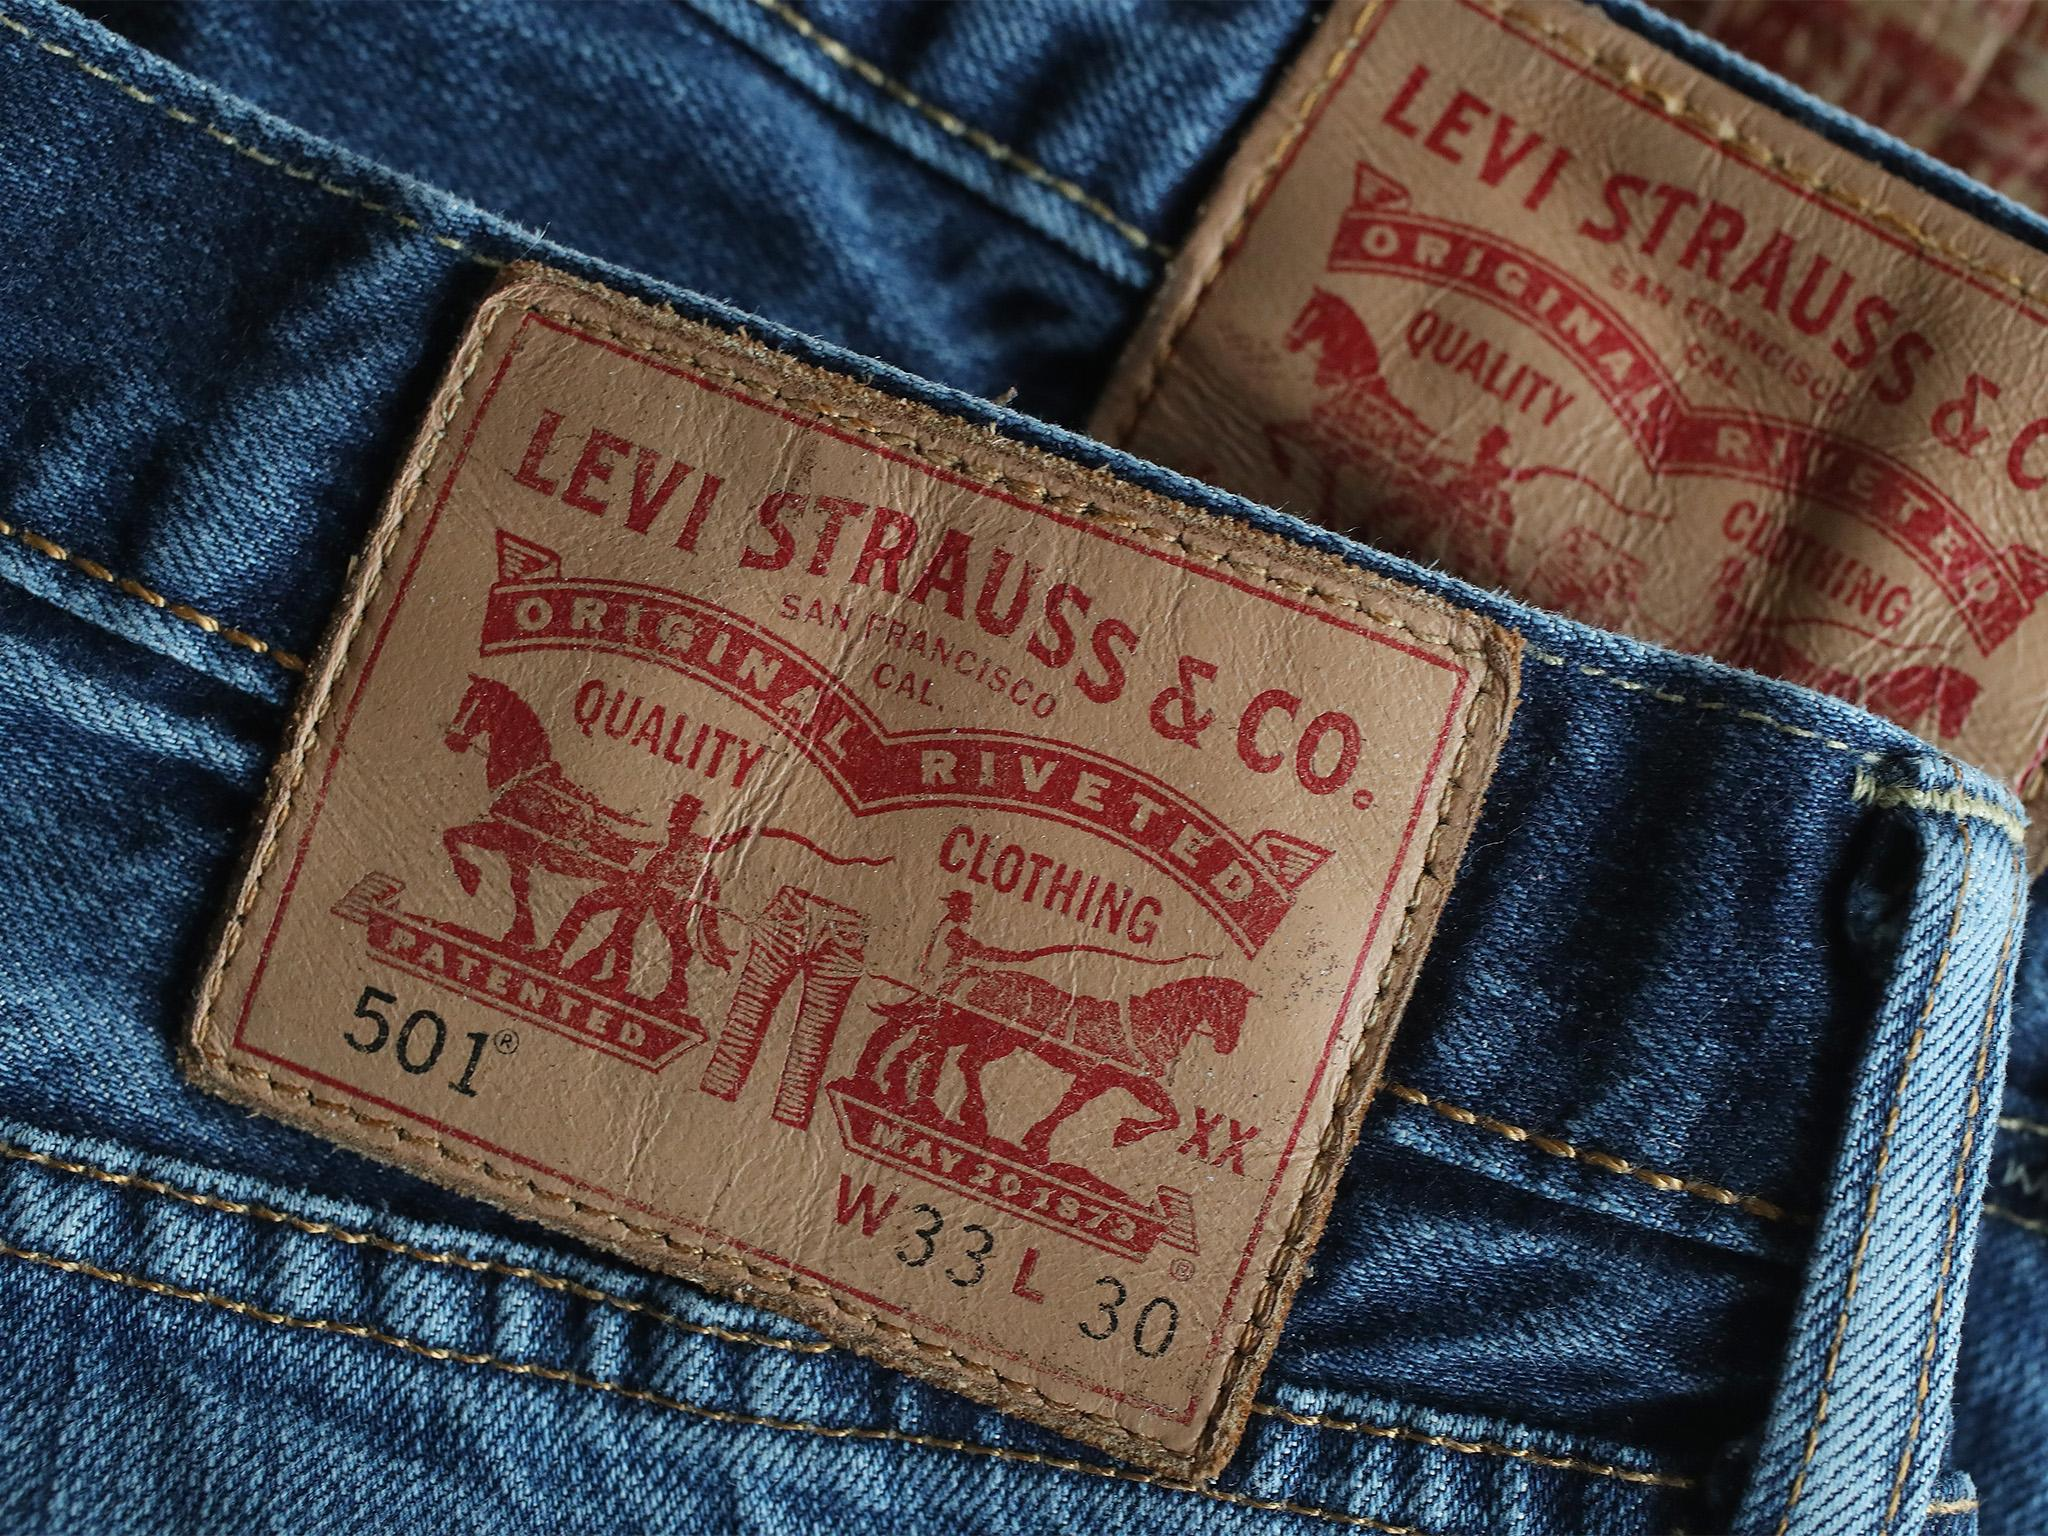 levi strauss joins up with gun control group   u0026 39 americans shouldn u2019t have to live in fear u0026 39